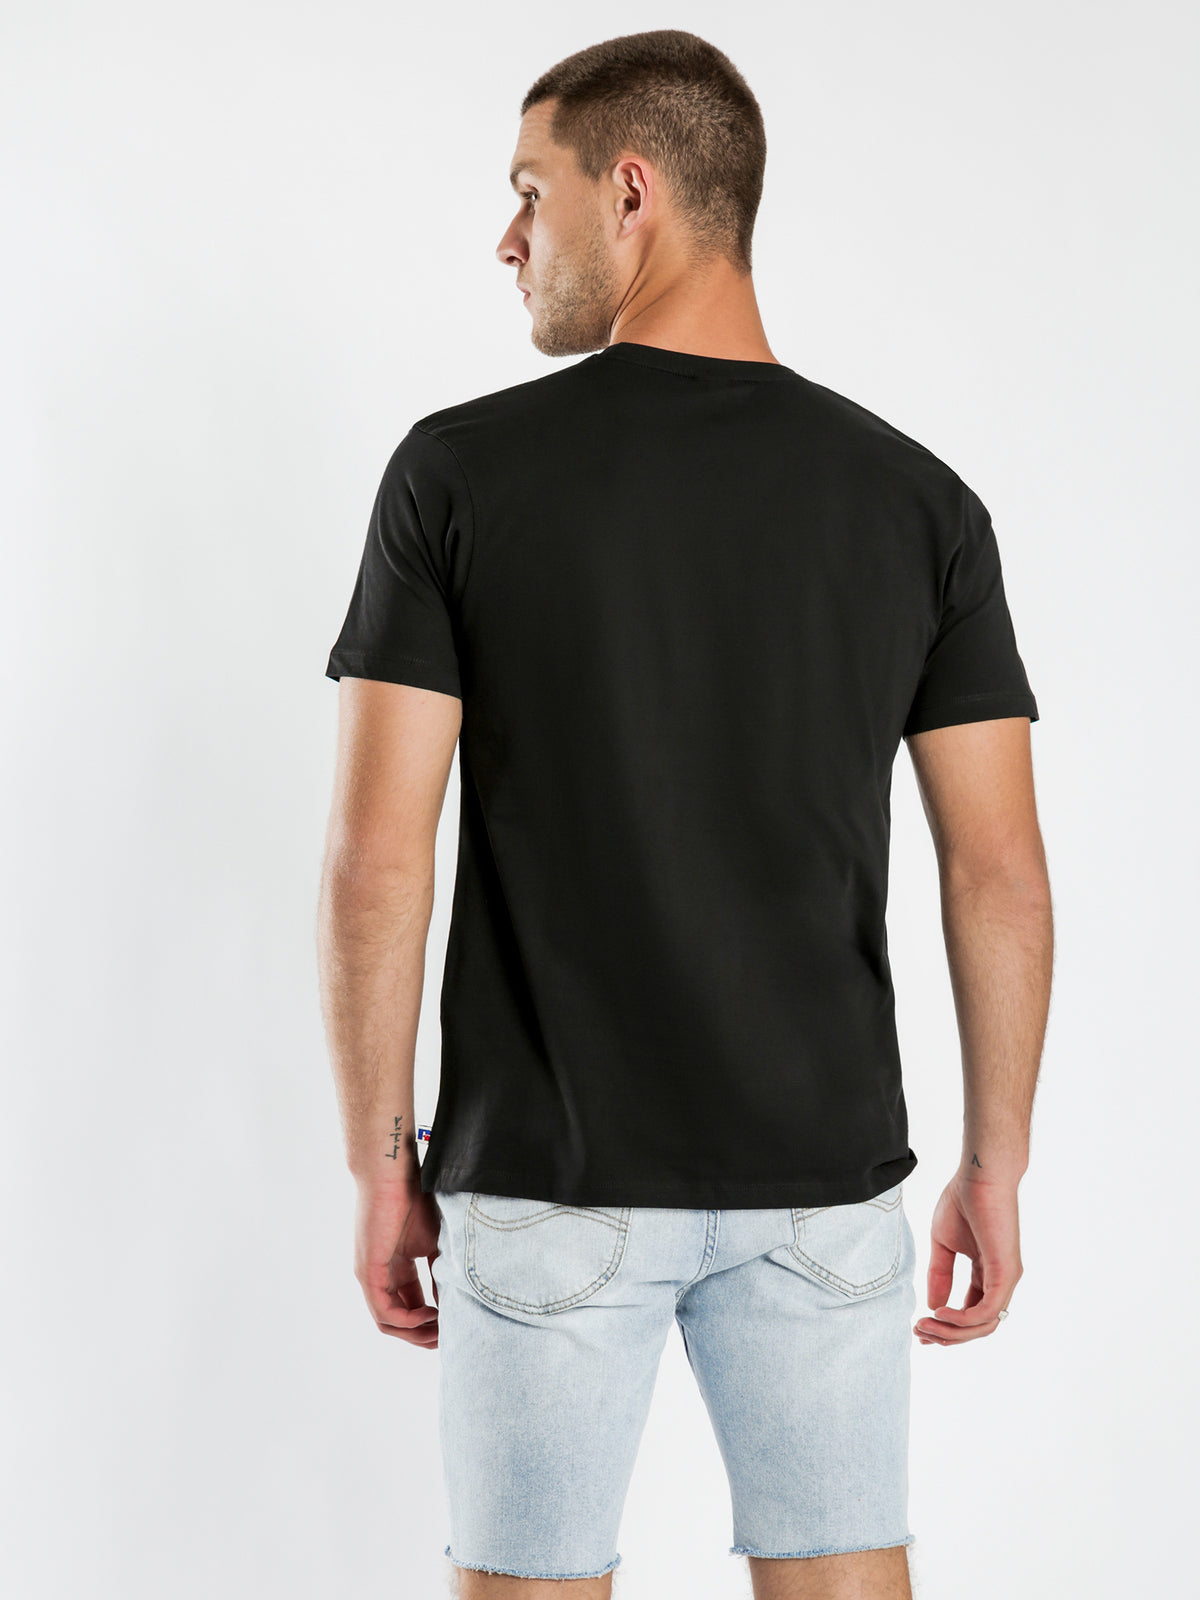 Iconic Crew Neck T-Shirt in Black